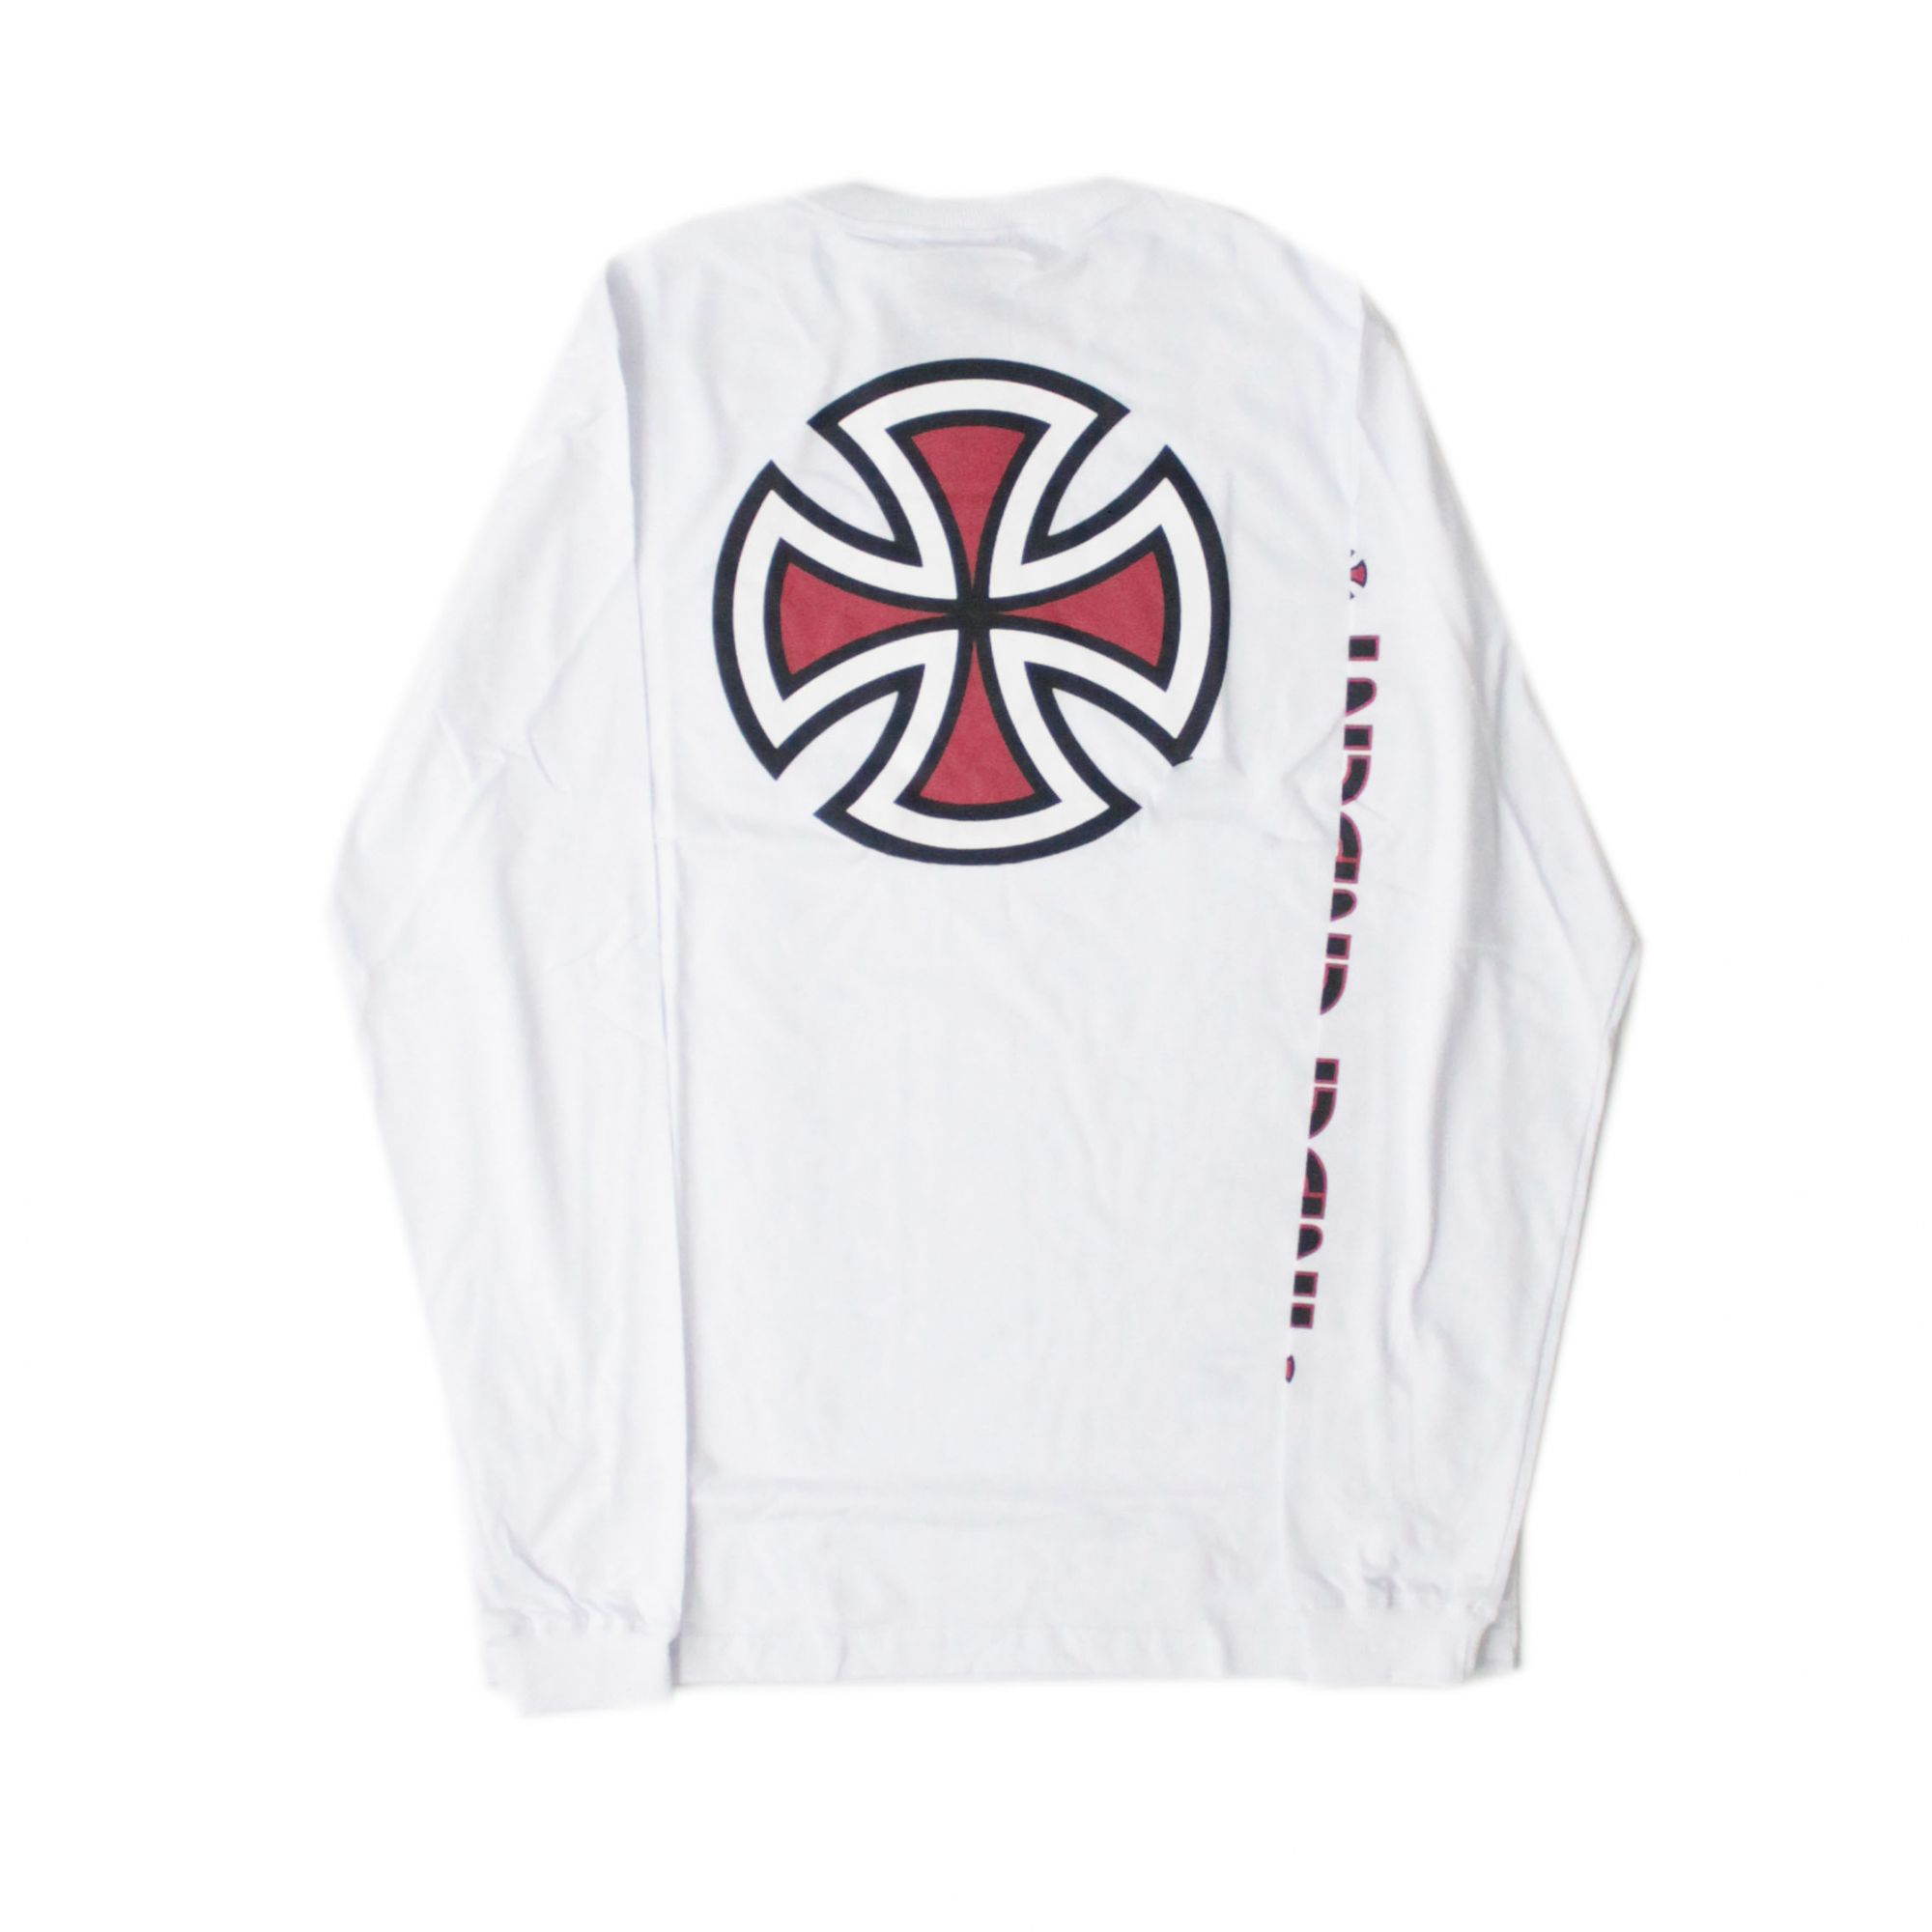 Camiseta Manga Longa Independent Bar Cross Branco